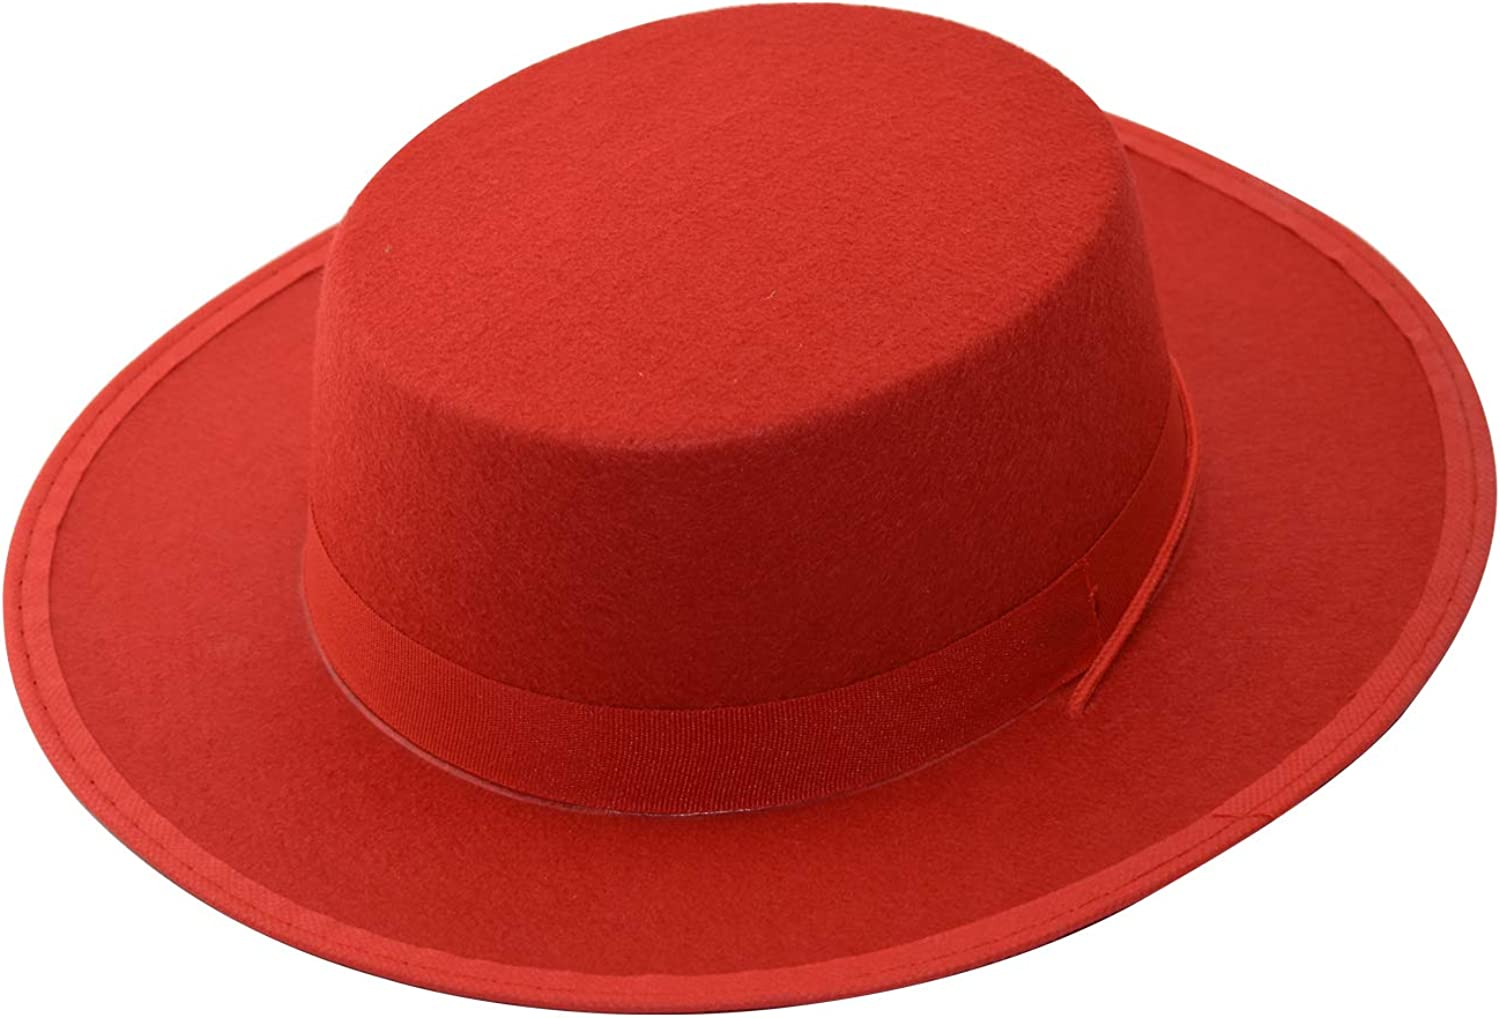 luyaoyao Black and Red Adult Deluxe Costume Spanish Felt Bolero Hat